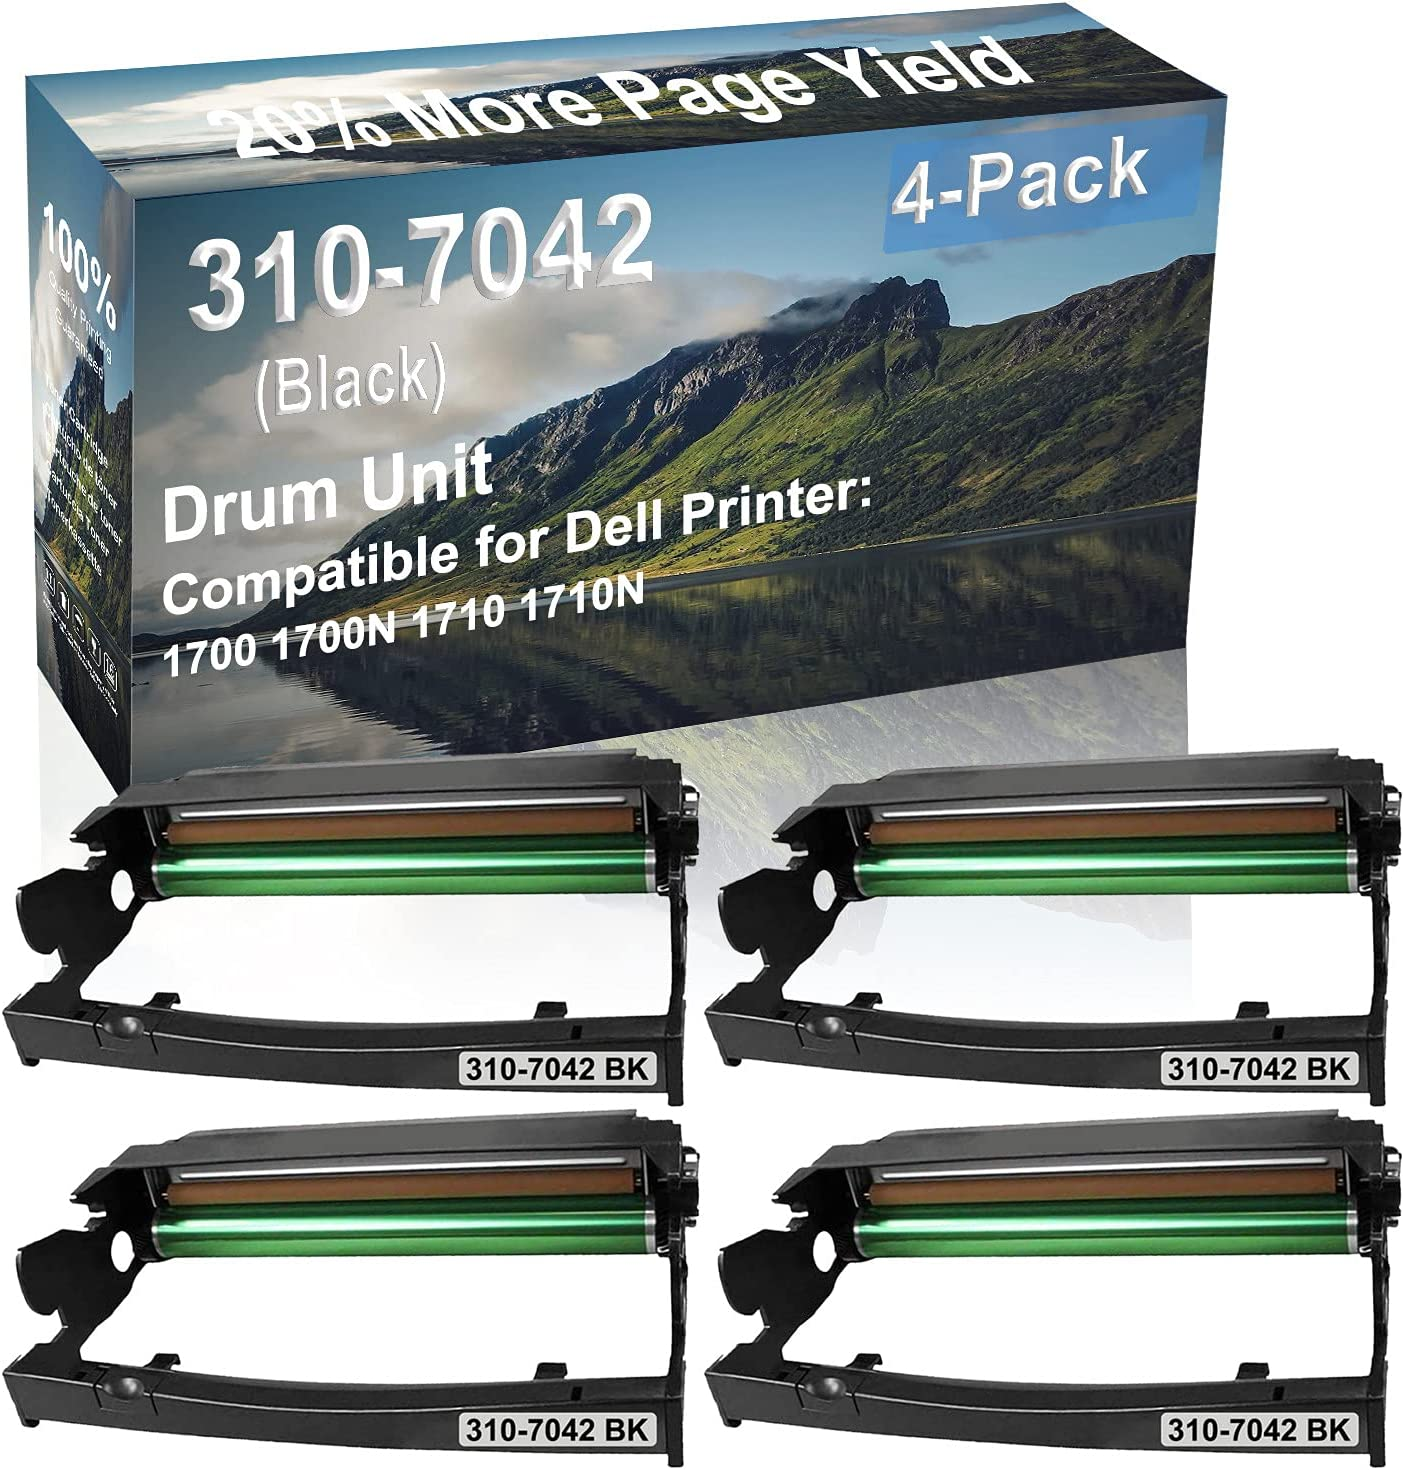 4-Pack Compatible Drum Unit (Black) Replacement for Dell 310-7042 Drum Kit use for Dell 1700 1700N 1710 1710N Printer